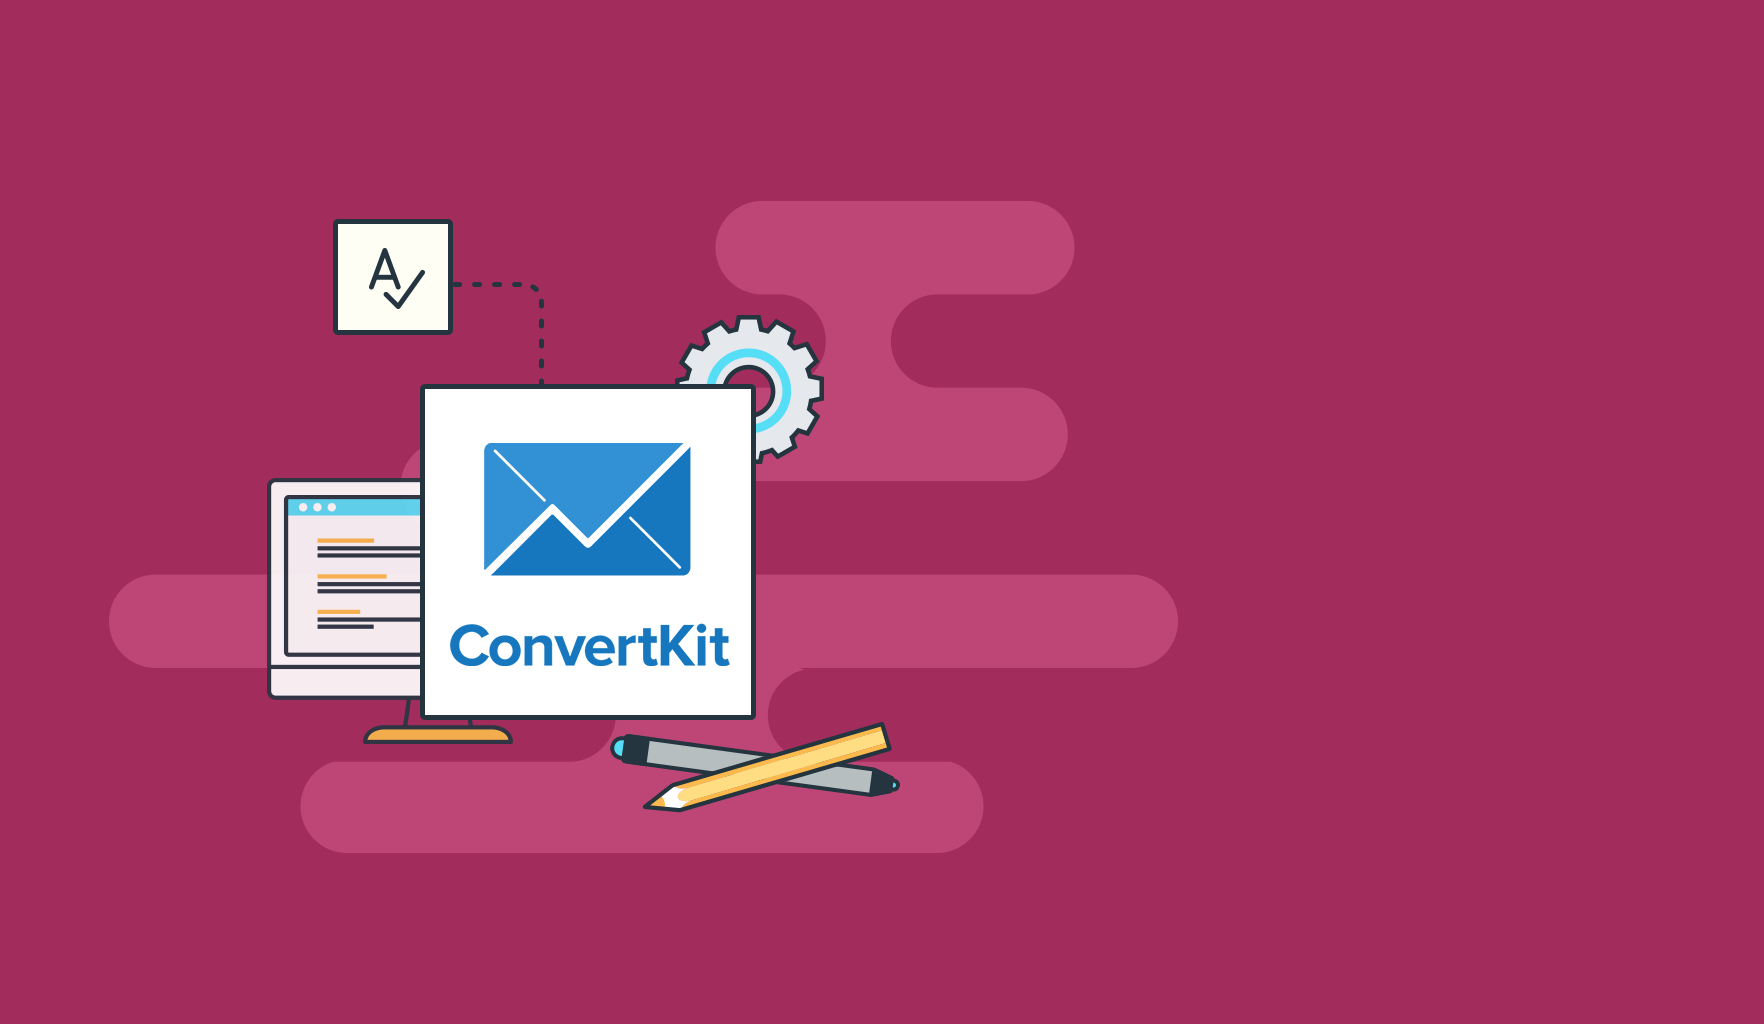 Online Coupon Printable Code For Convertkit Email Marketing